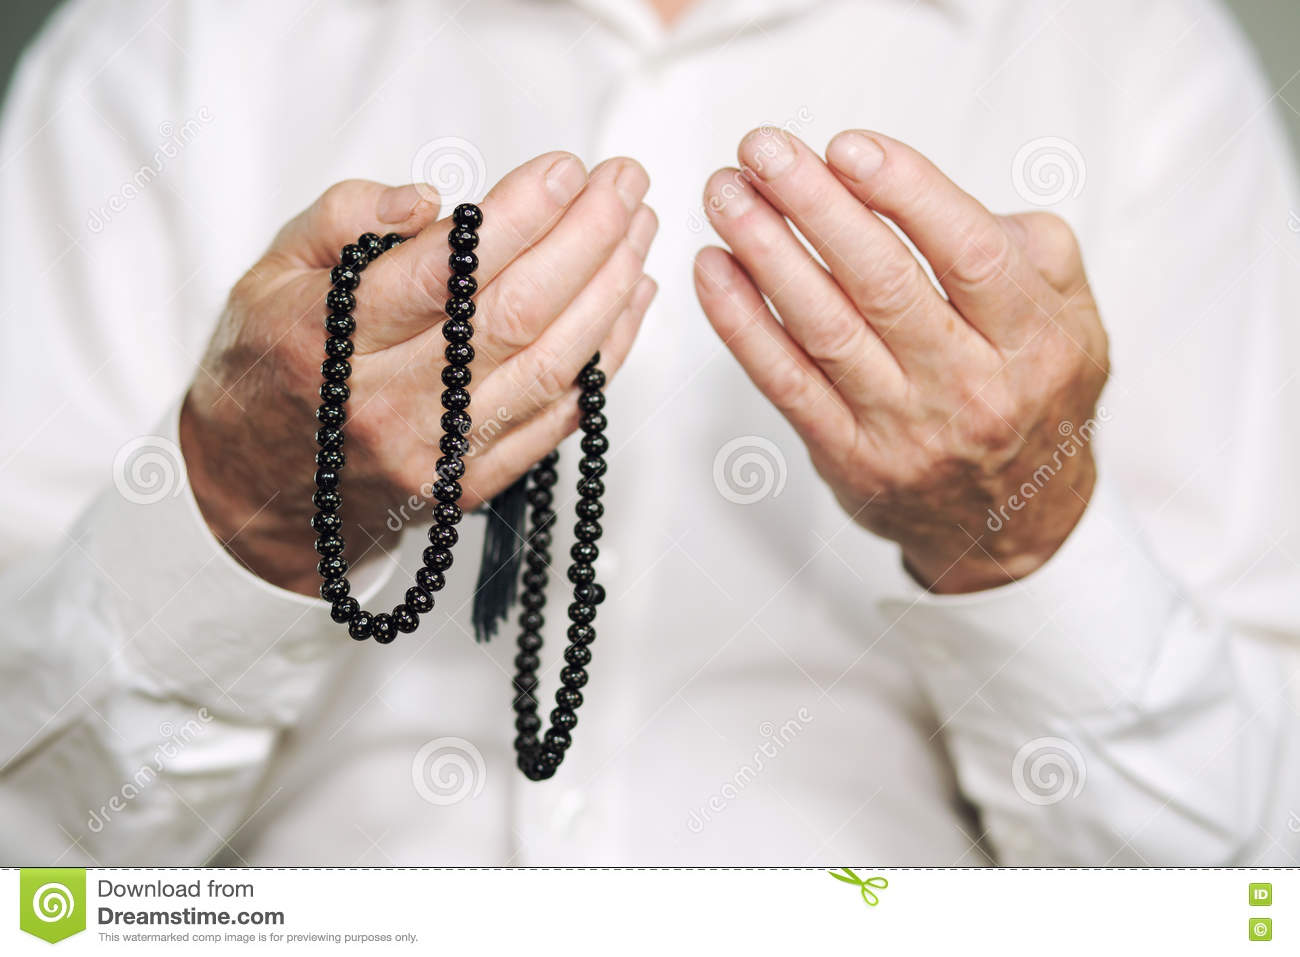 Praying Hands Of An Old Man Holding Rosary Beads Stock Photo Image